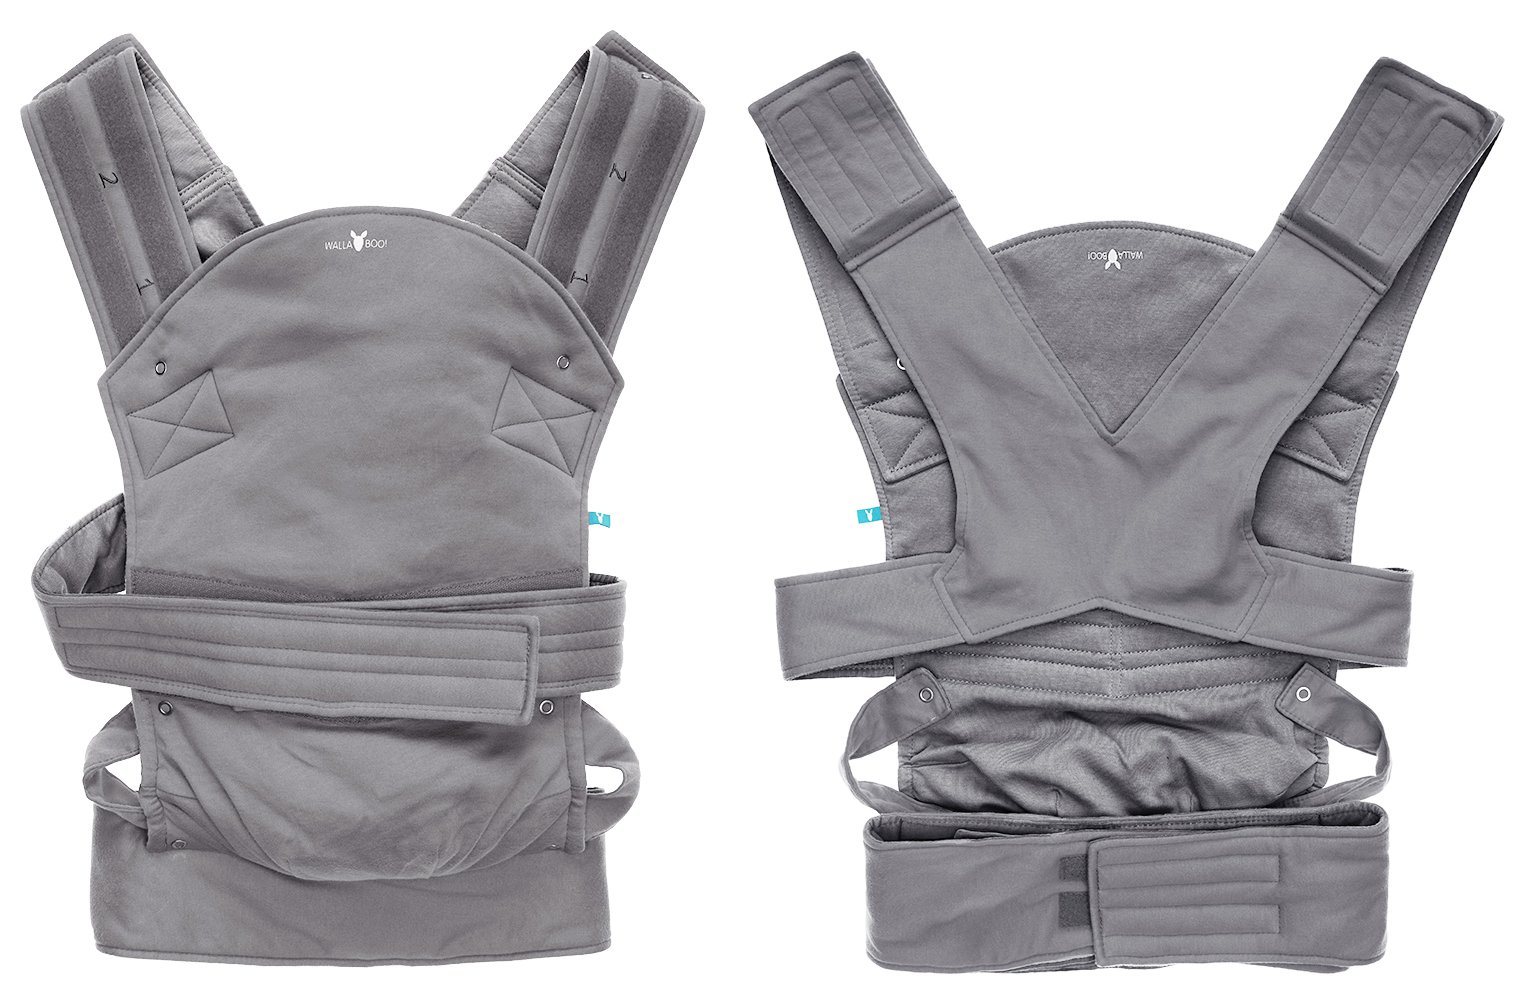 Wallaboo Baby carrier Ease, Hig Quality, Easy Adjustable and Ergonomic Front Carrier, 2 carrying poitions, Strong 100% cotton, Newborn 8lbs to 33lbs, Colour: Grey Wallaboo Ergonomic carrying with wide leg position (m-position) Sturdy waist belt and padded shoulder straps. Age suitability: babies from 3,5kg / 8 lbs to 15kg / 33 lbs. Walla boo baby carrier is made with 100% breathable cotton, makes baby feel comfortable and cozy 4